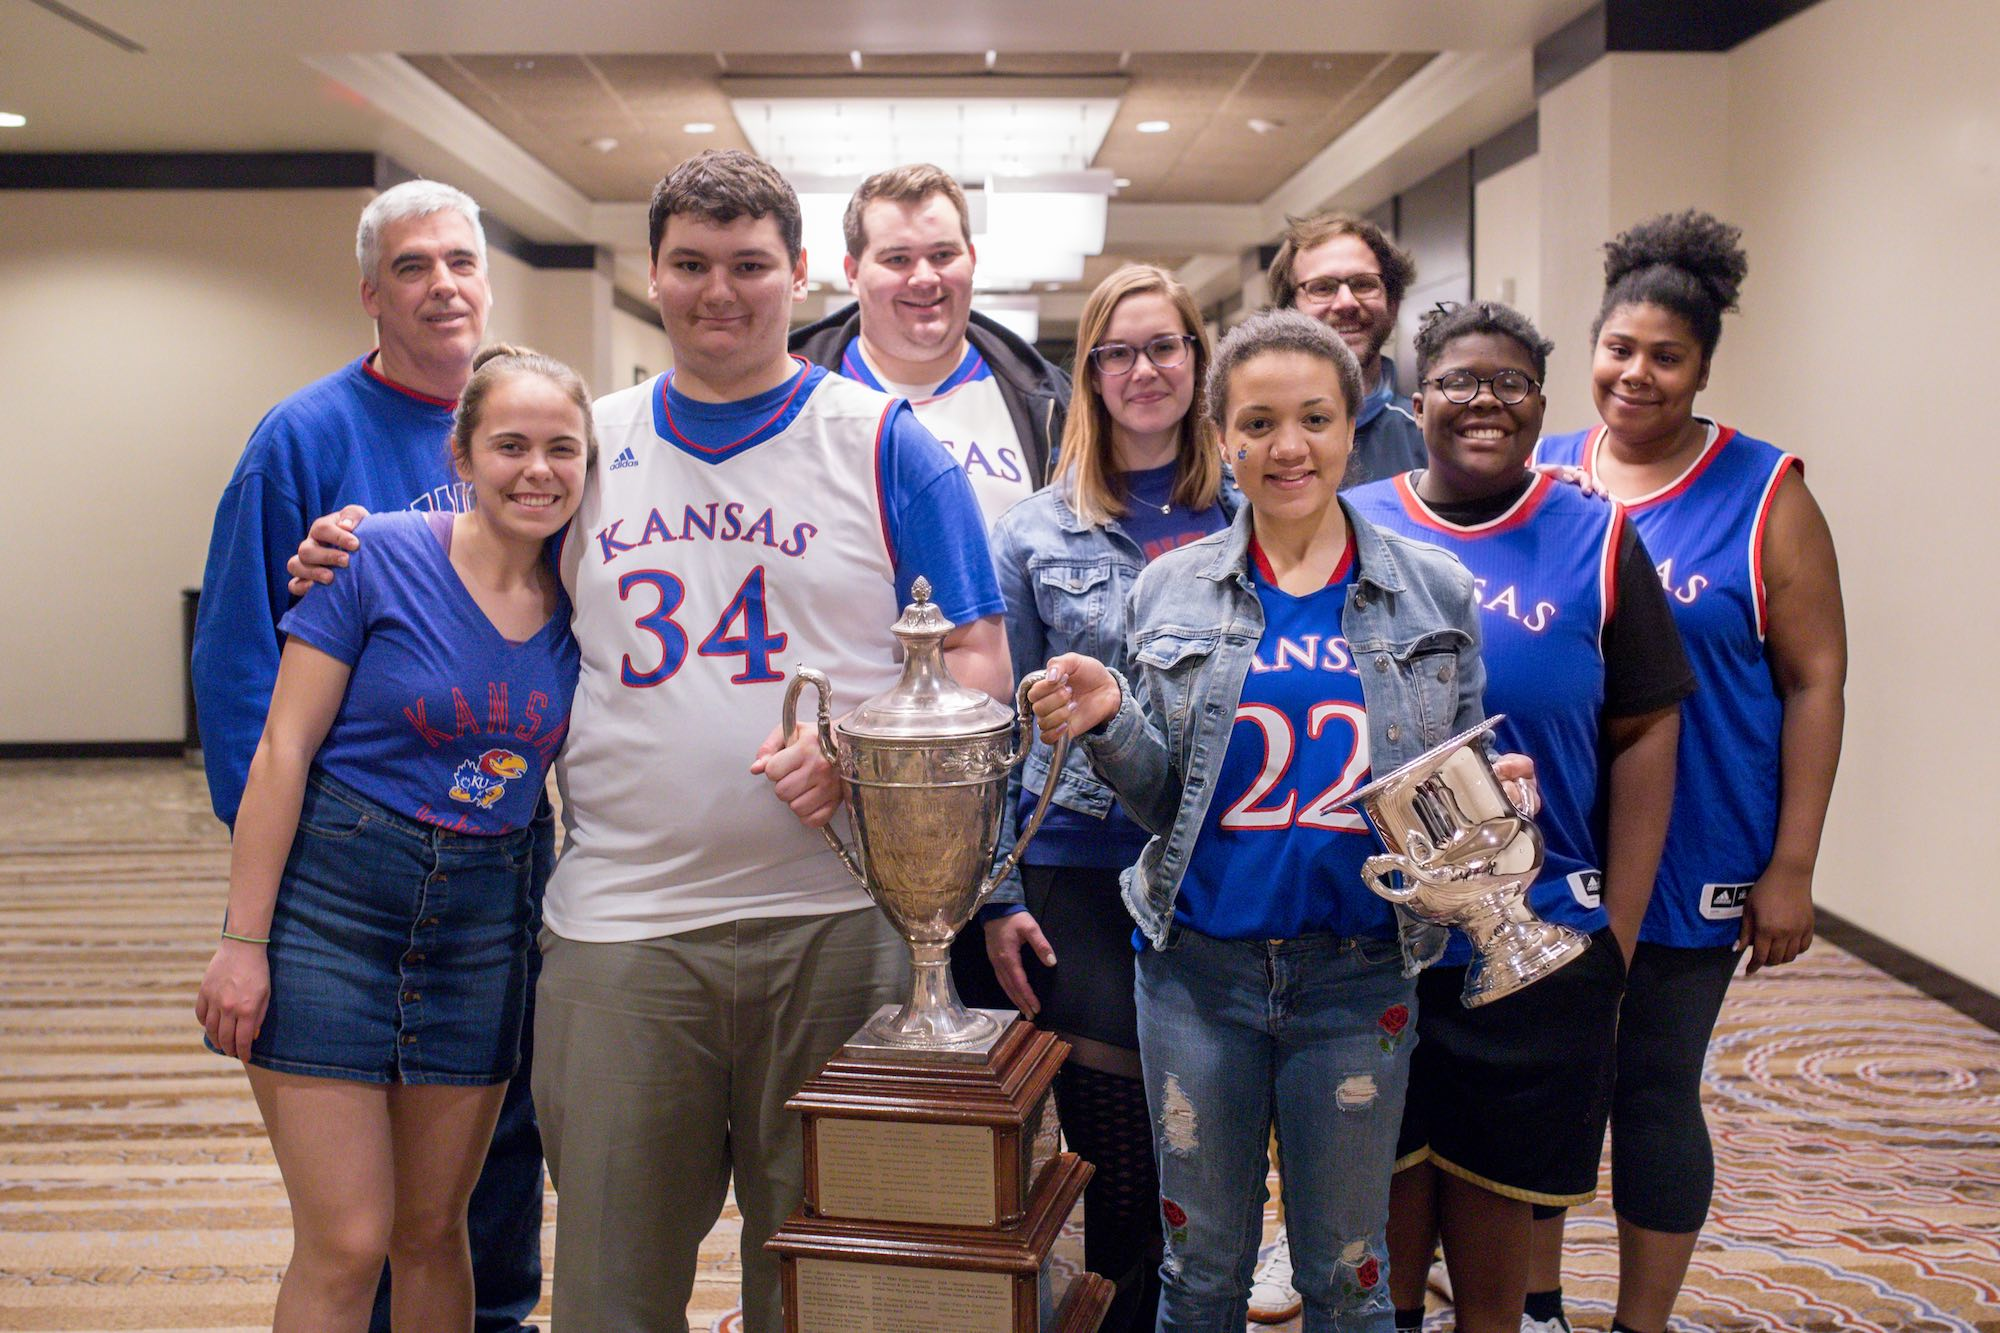 KU debate team wins national championship | The University of Kansas